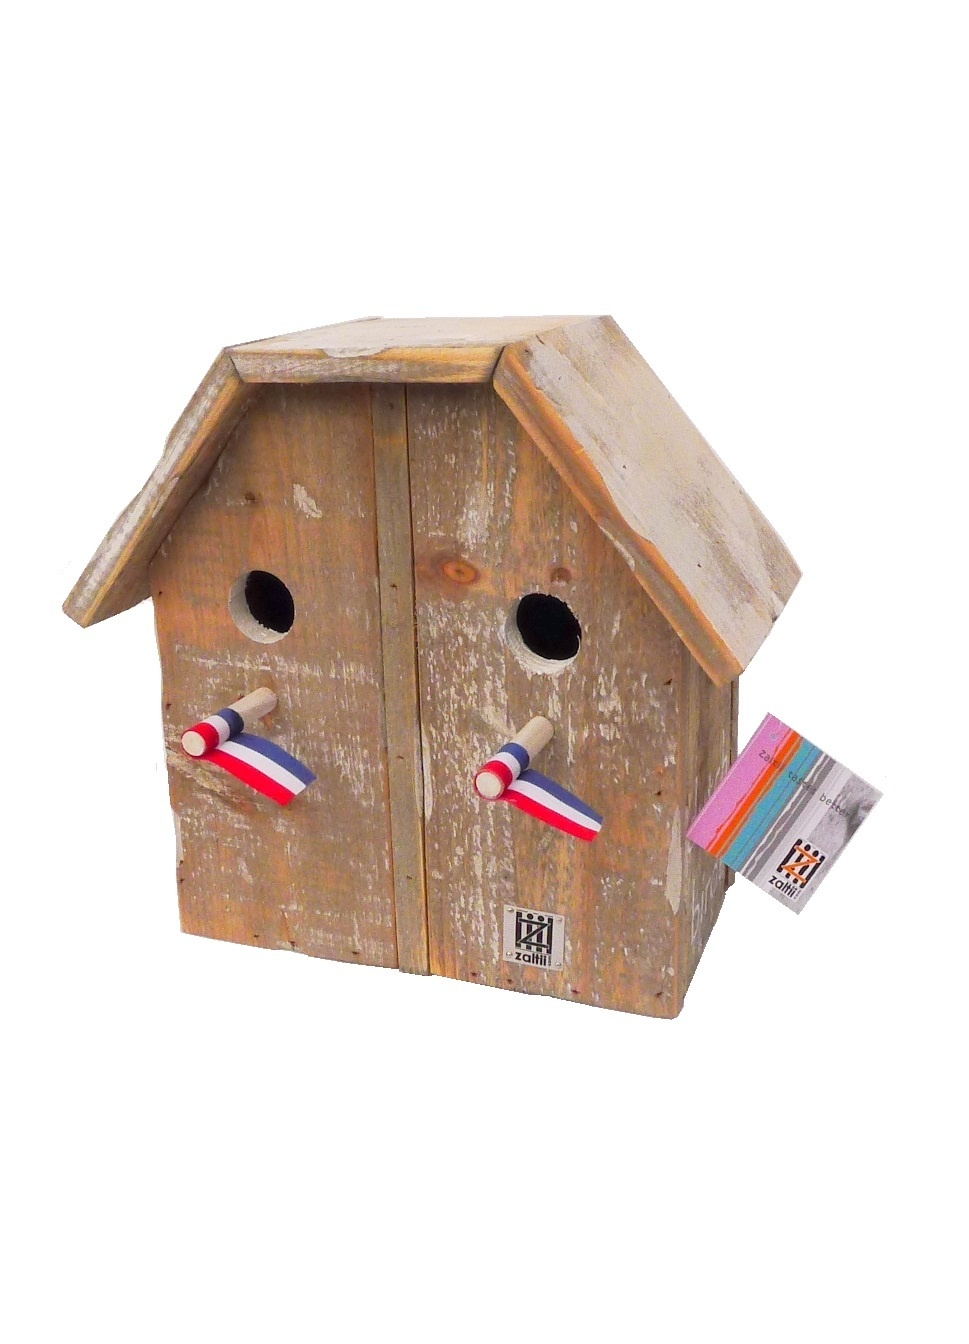 birdhouse old dutch 2 under 1 roof-7